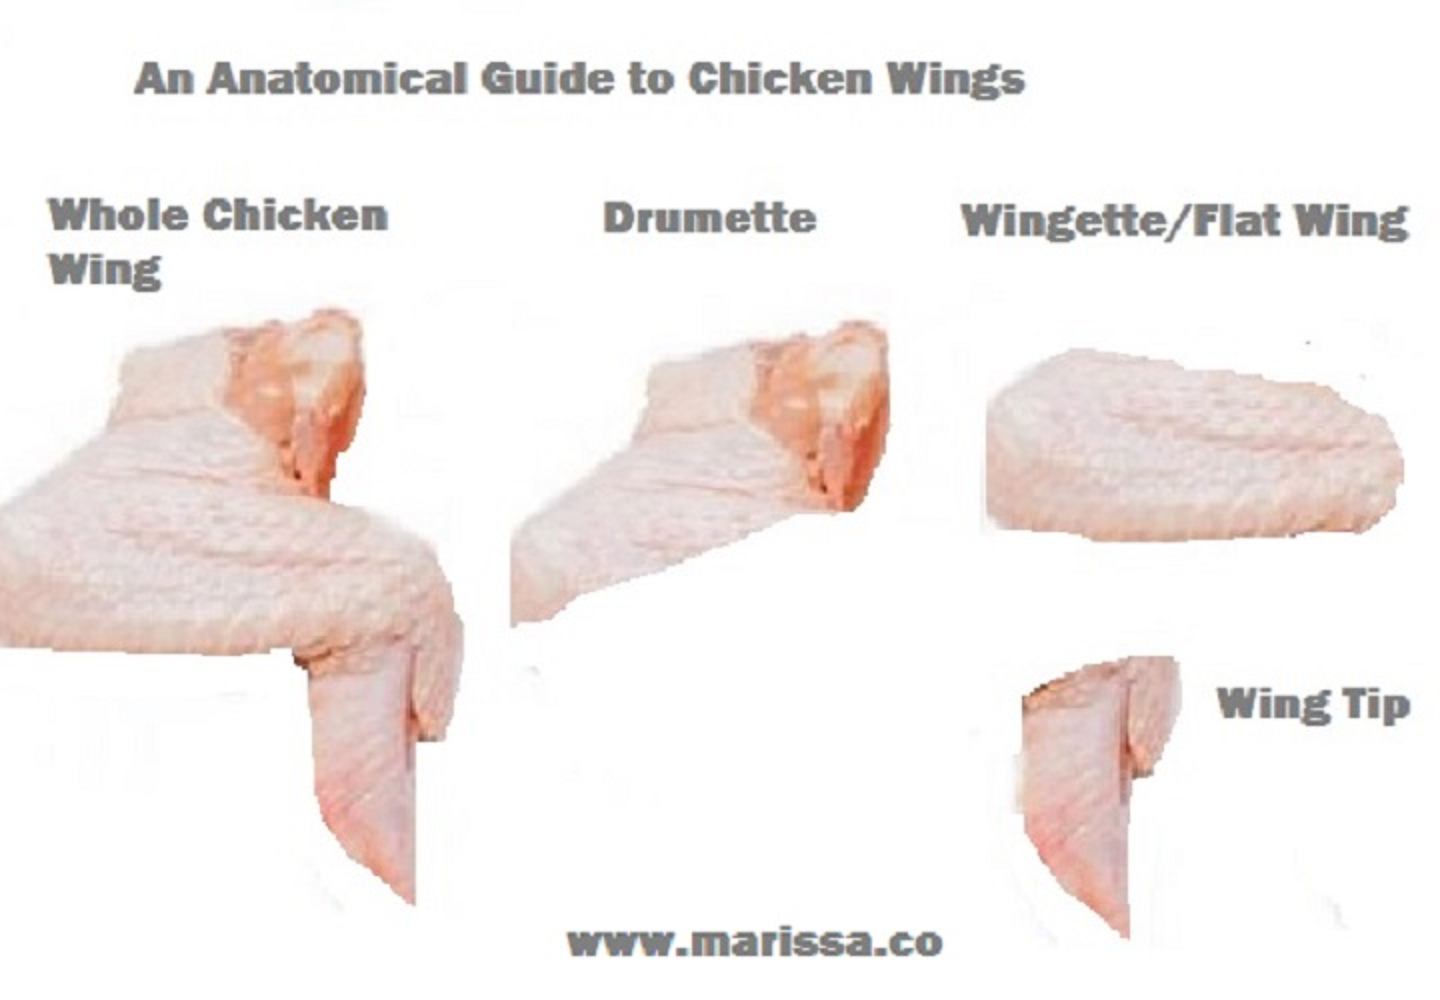 Anatomical Guide To Chicken Wings Marissas Recipes Ideas